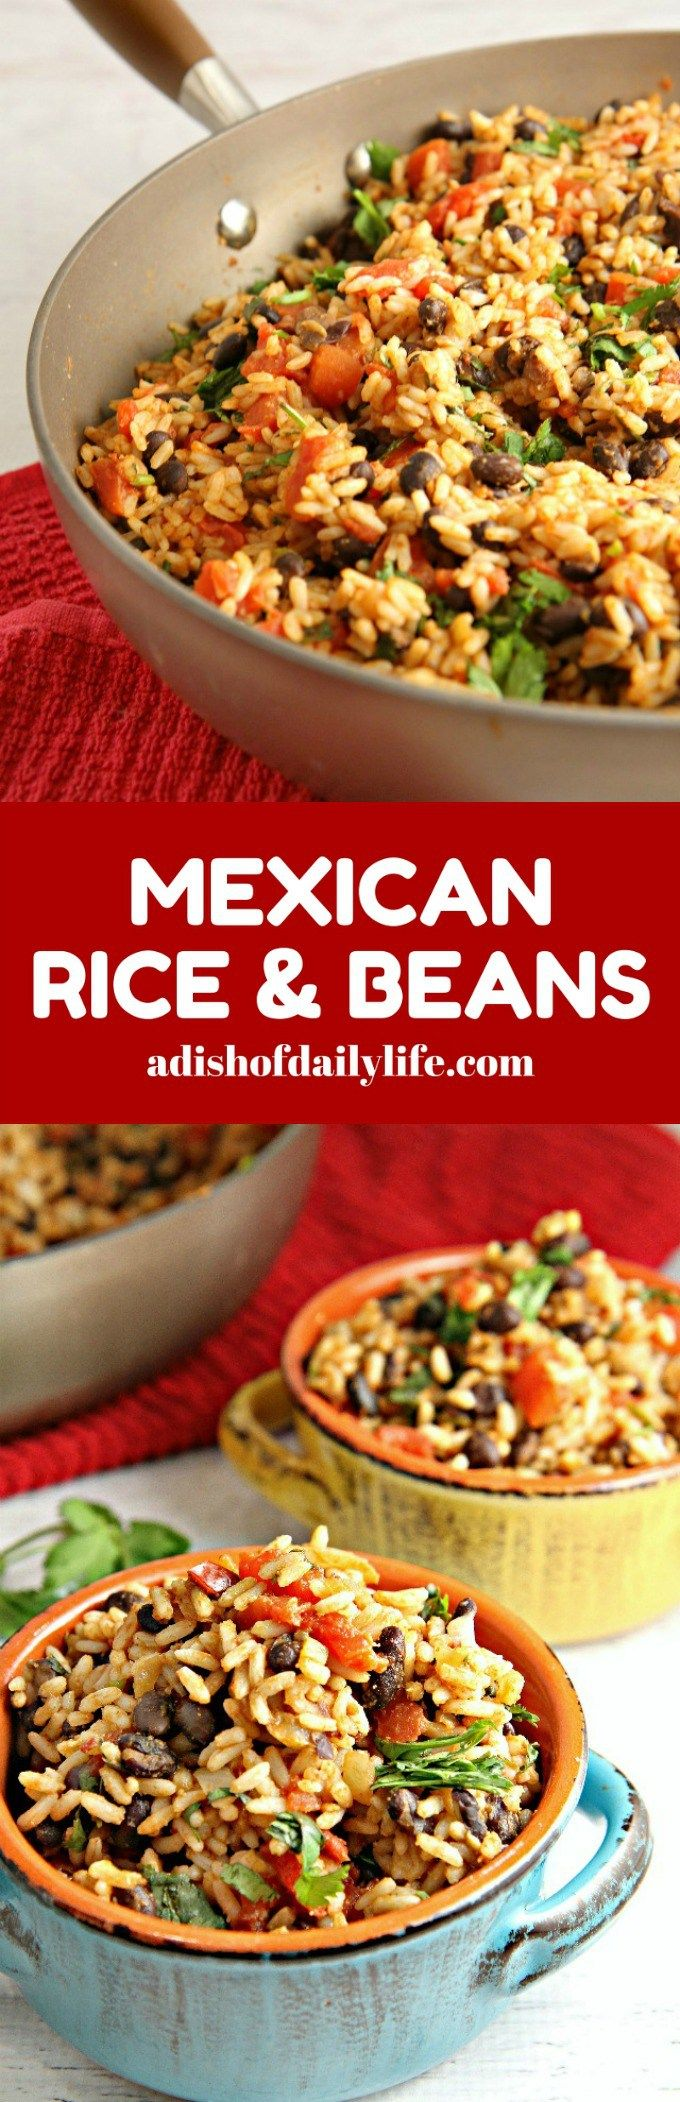 Mexican Rice and Beans...an easy versatile vegetarian dish! Use it as a side dish for Mexican night, use the leftovers as a filling for burritos along with chicken or beef, or add cheese and turn it into a Mexican bake. Mexican | Cinco de Mayo | Vegetarian | Easy recipes